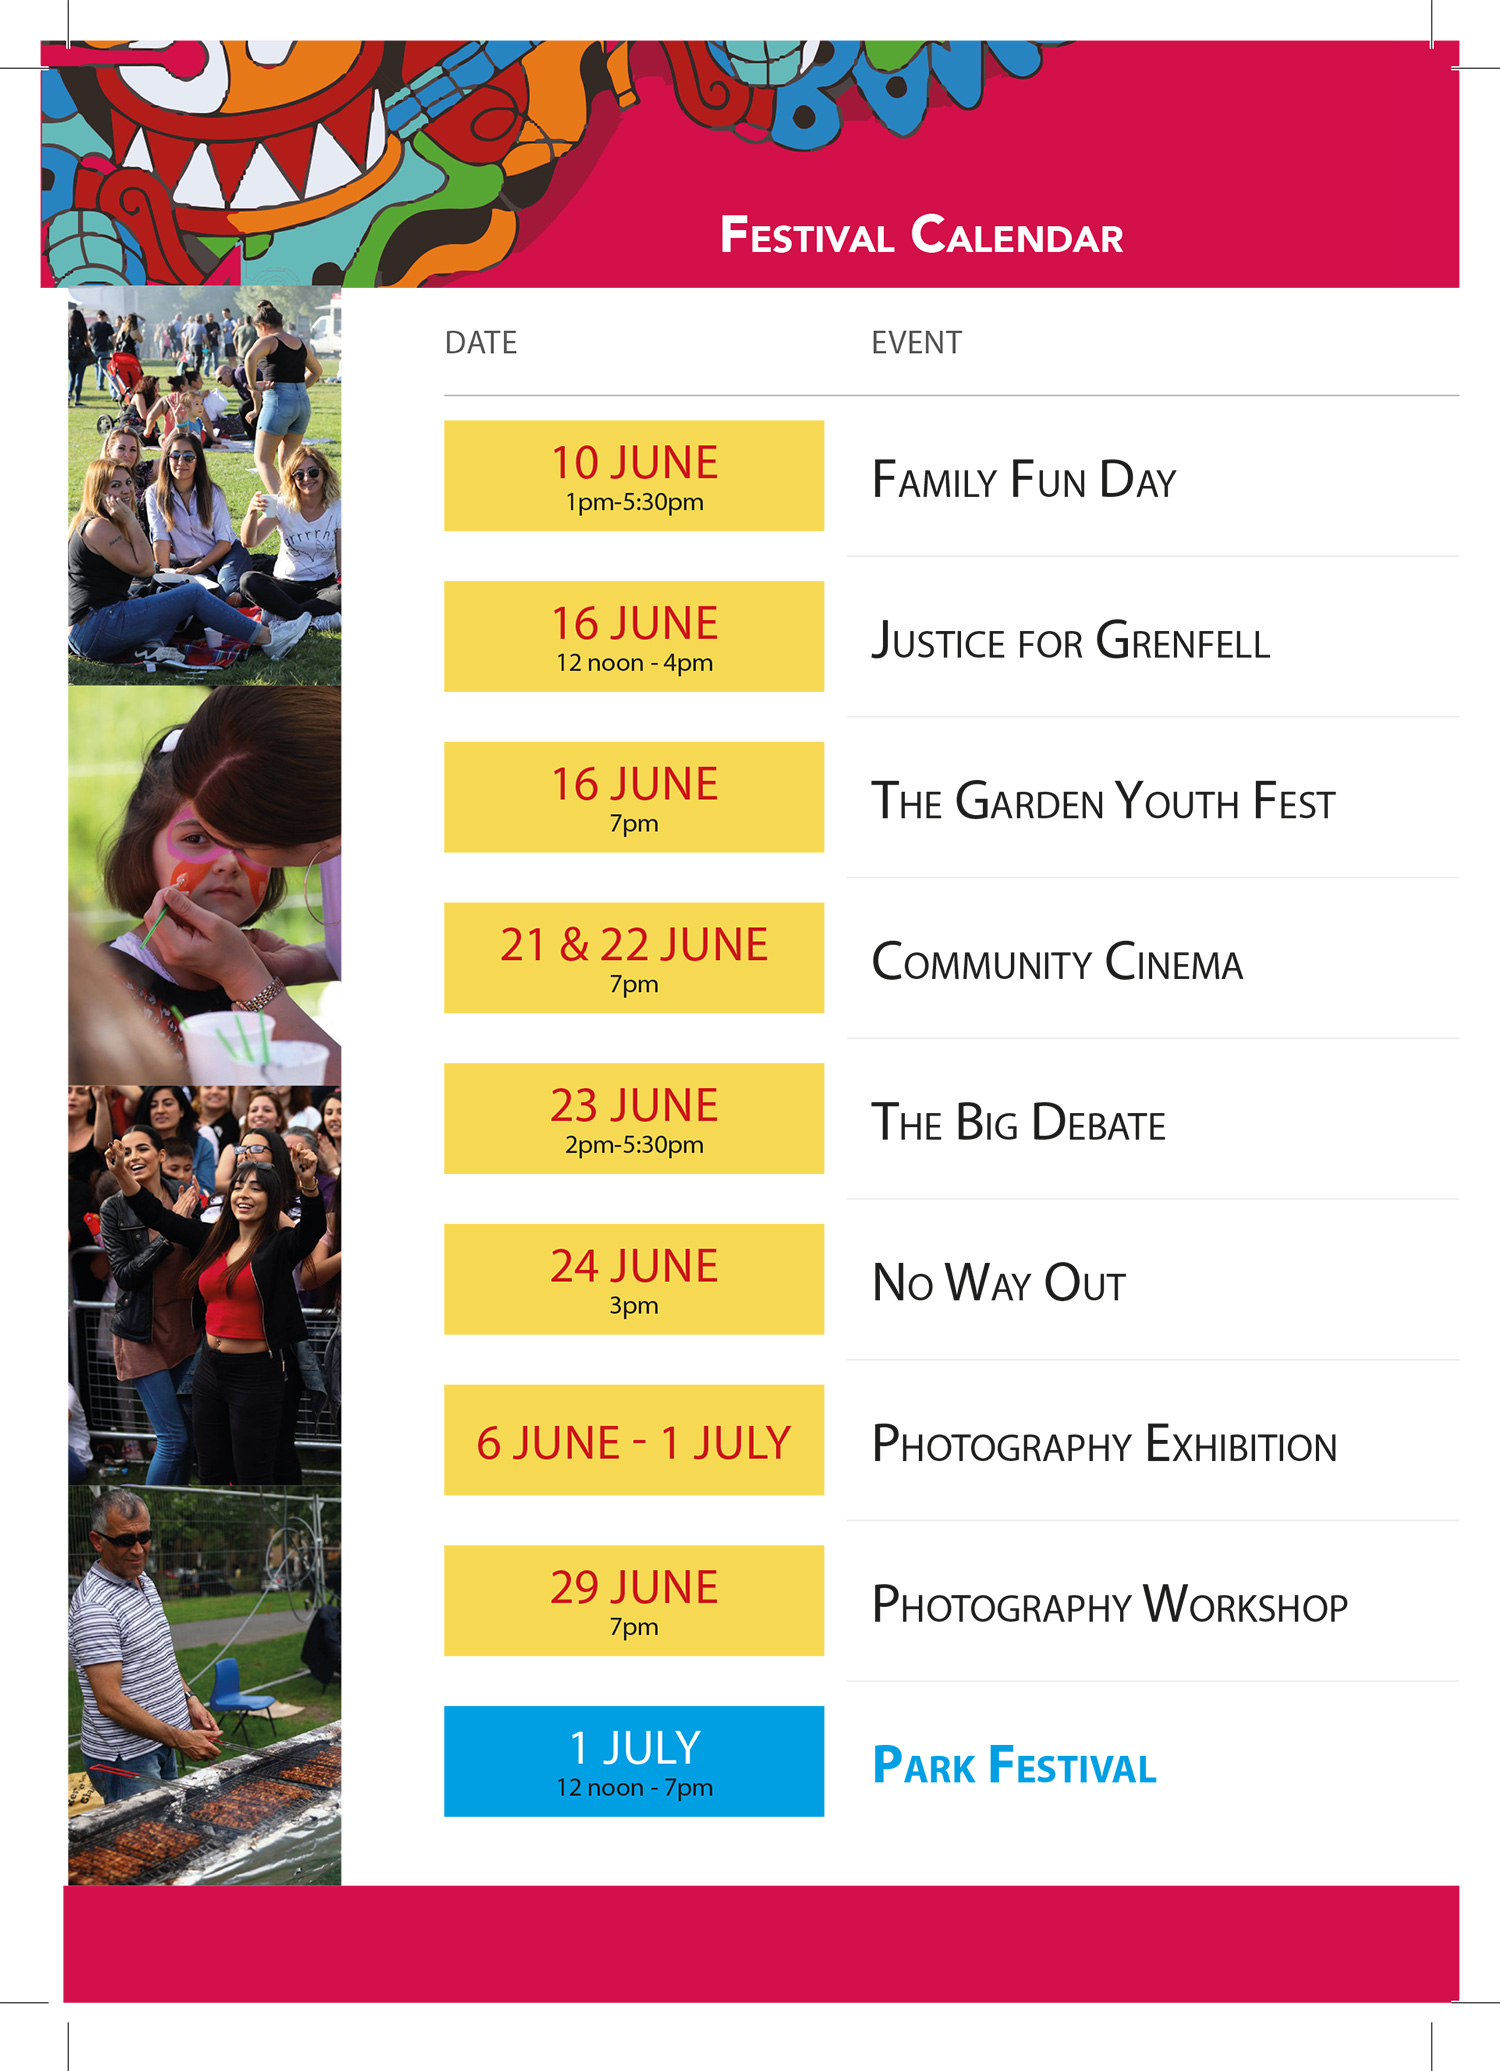 daymer turkish and kurdish community centre festival calendar